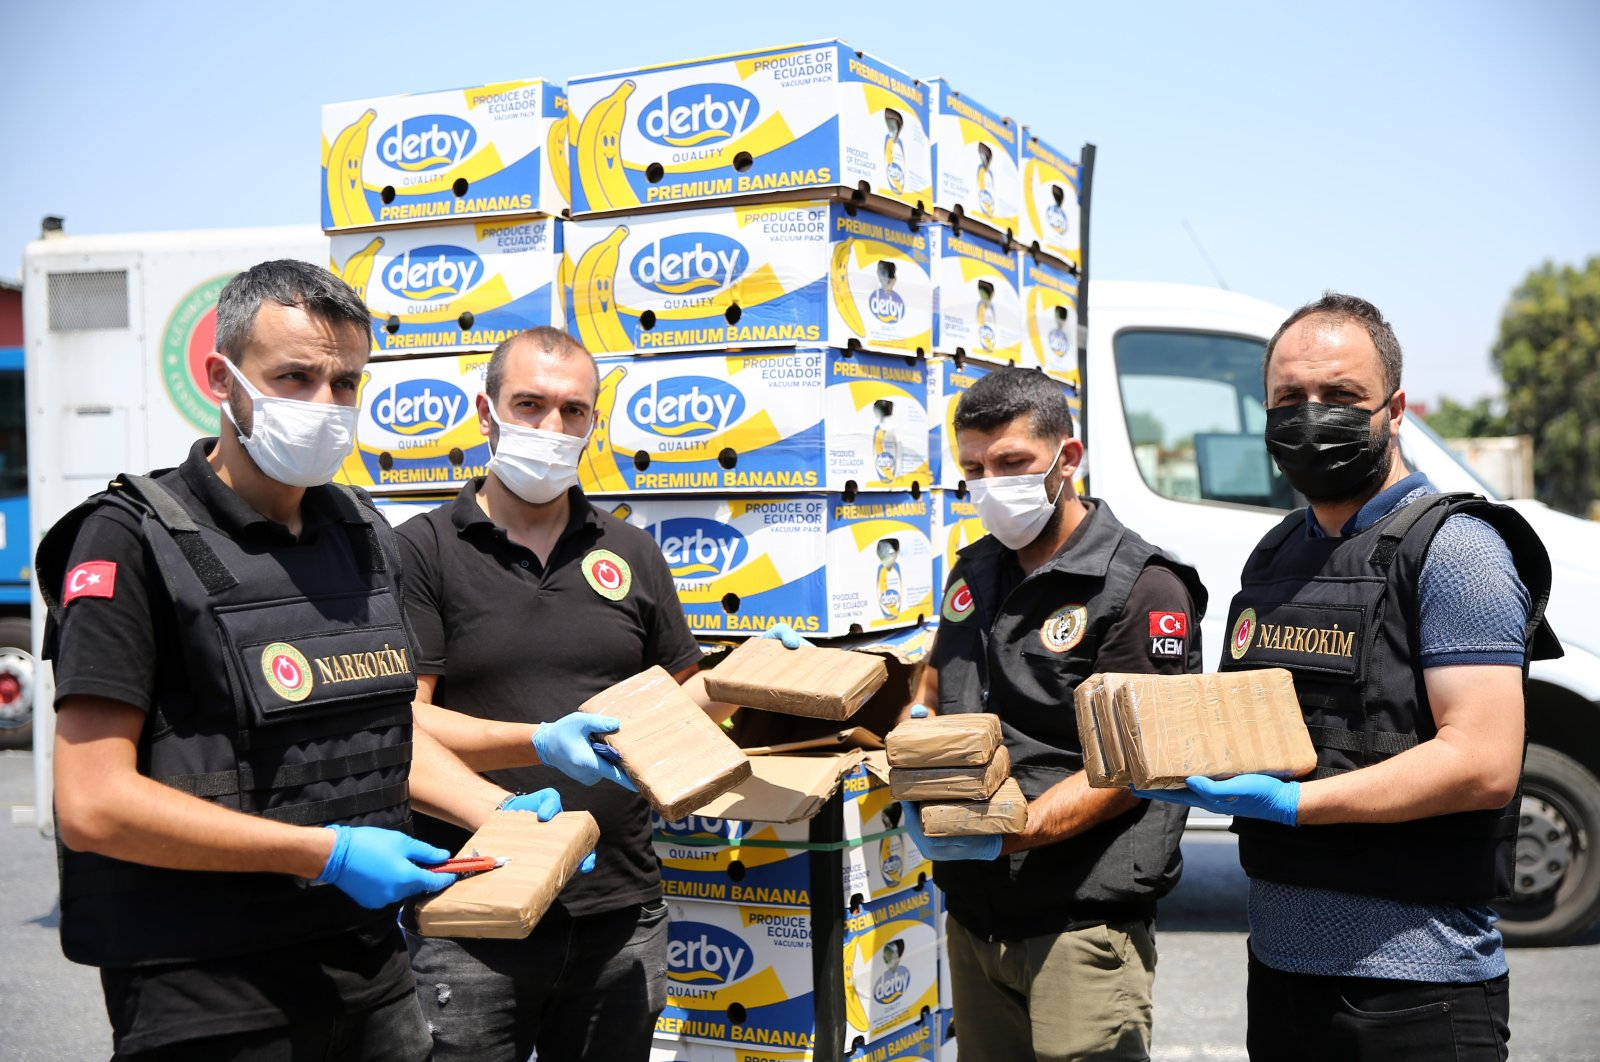 Police officers show drugs discovered in boxes of bananas aboard a vessel, Mersin, southern Turkey, June 18, 2021. (AA PHOTO)